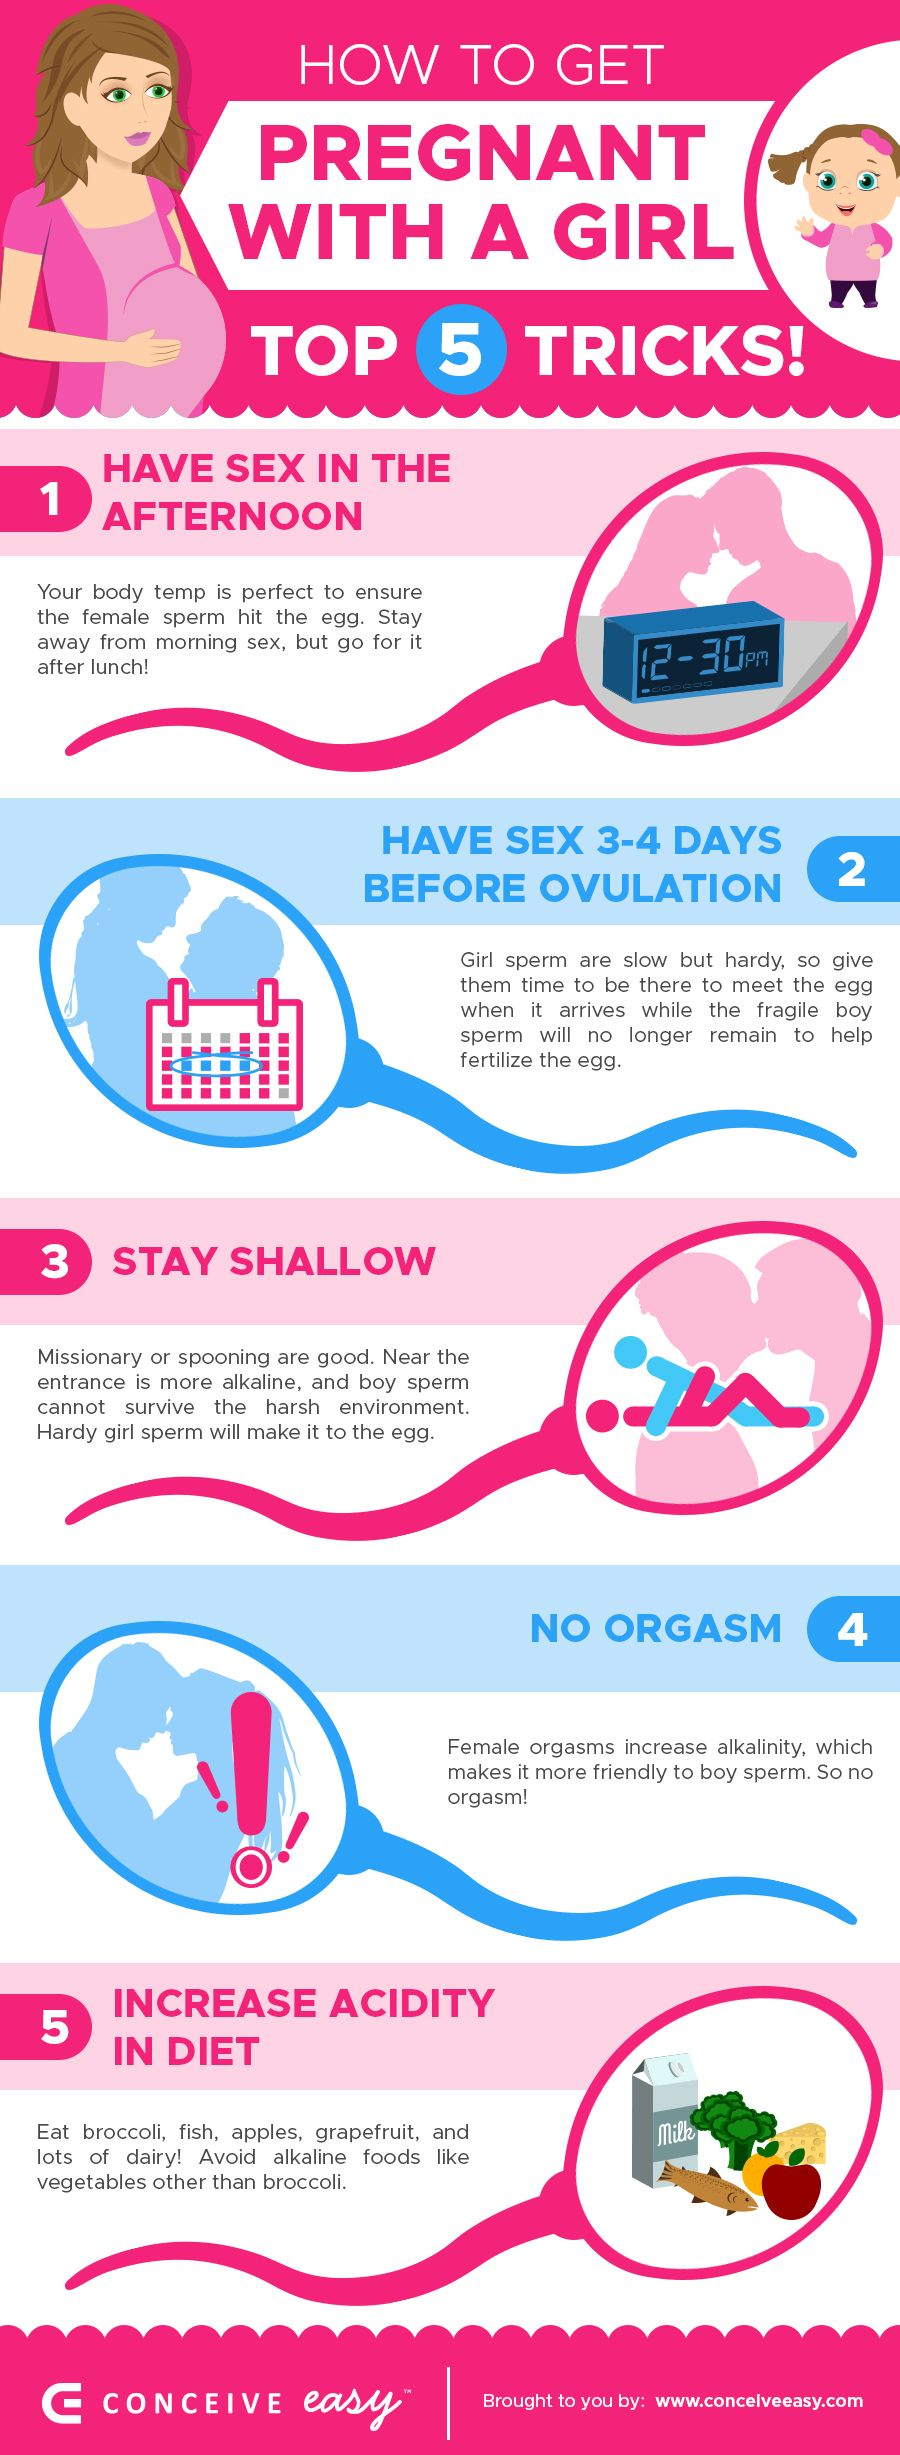 How to Conceive a Baby Girl: 5 Tips   Pregnant with a girl ...